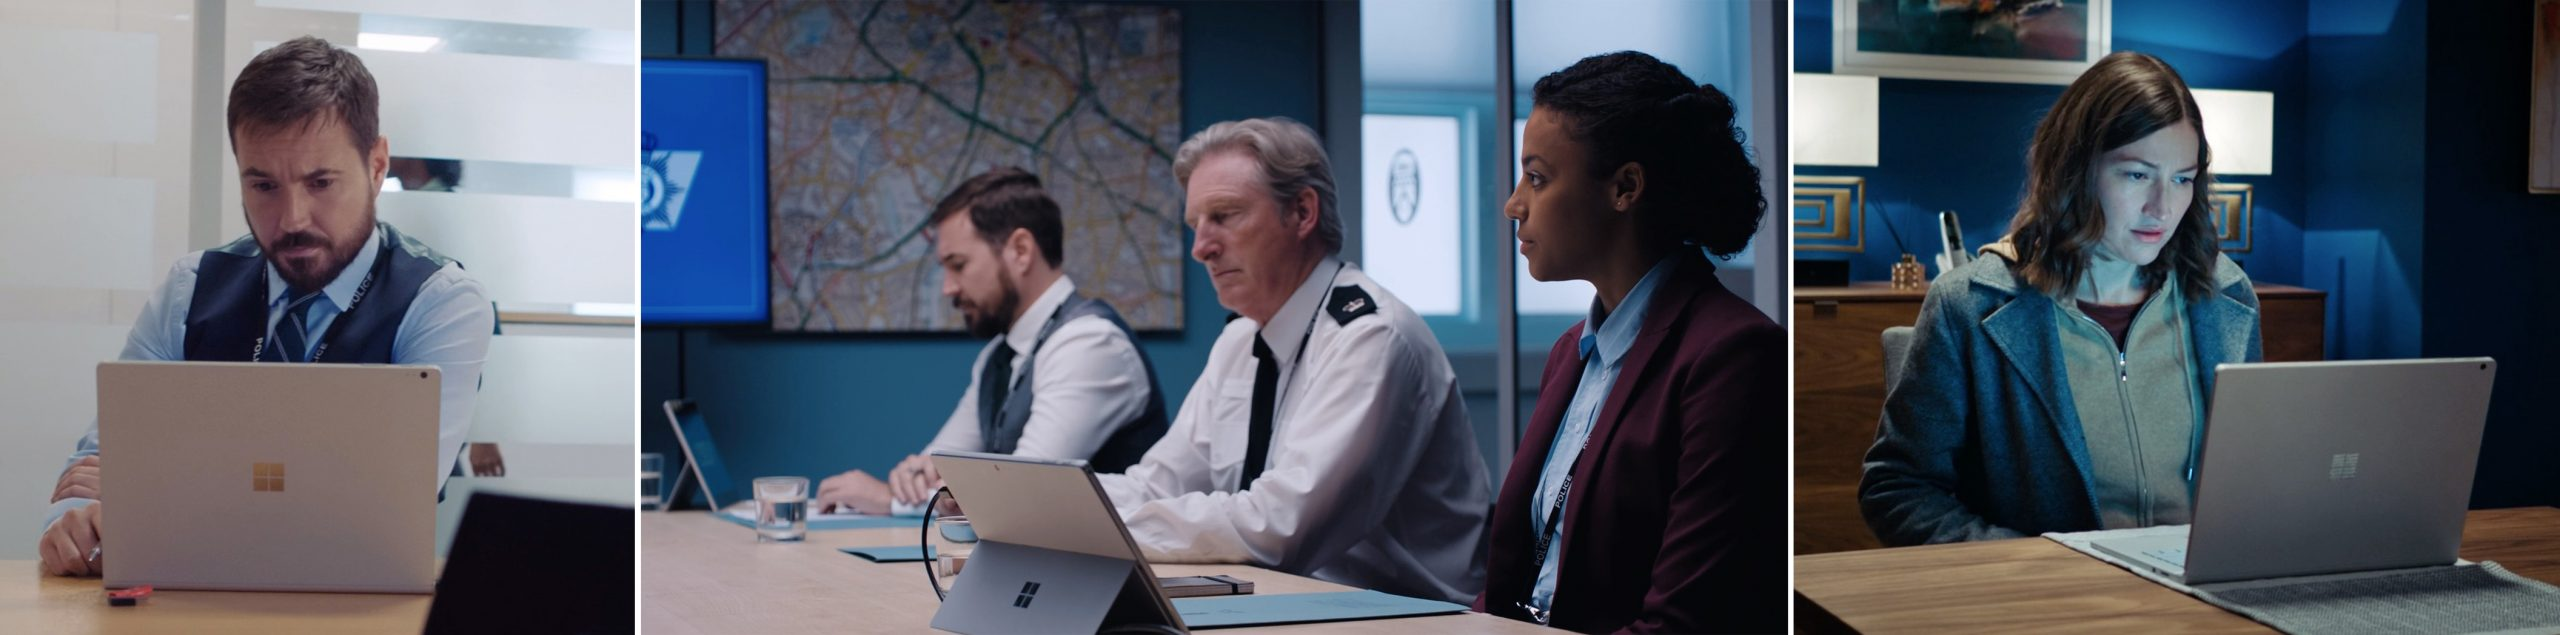 Microsoft product placement in season 6 of LINE OF DUTY